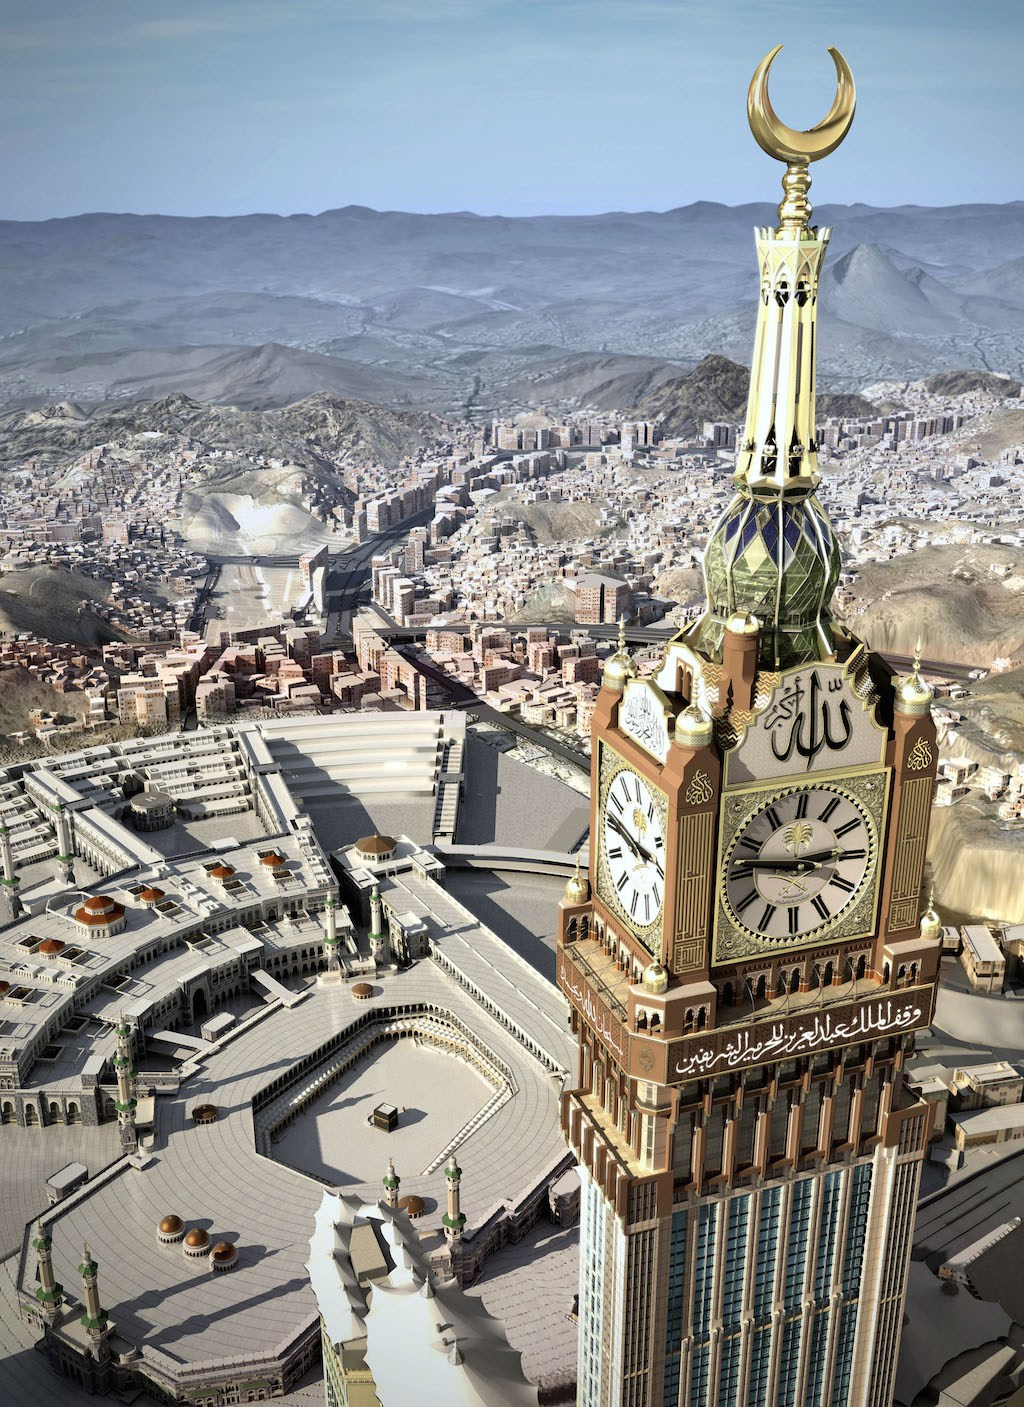 The four-faced clock, atop the Abraj Al-Bait Towers, in Mecca, Saudi Arabia stands over the holy Kabaa, lower rear The clock faces are 43 ◊ 43 m (141 ◊ 141 ft). Saudi Arabia will test what it is billing as the world's largest clock in the holy city of Mecca during the Muslim fasting month of Ramadan, the official news agency reported Tuesday, Aug. 10, 2010. The tallest tower in the complex will stand as the tallest building in Saudi Arabia, tallest and largest hotel in the world, with a planned height of 601 m (1,972 ft), including a 200 ft spire. Upon completion, the structure would have the largest floor area of any structure in the world with 1,500,000 m2 (16,150,000 sq ft) of floorspace. (AP Photo/ Saudi Press Agency) ** EDITORIAL USE ONLY, NO SALES **